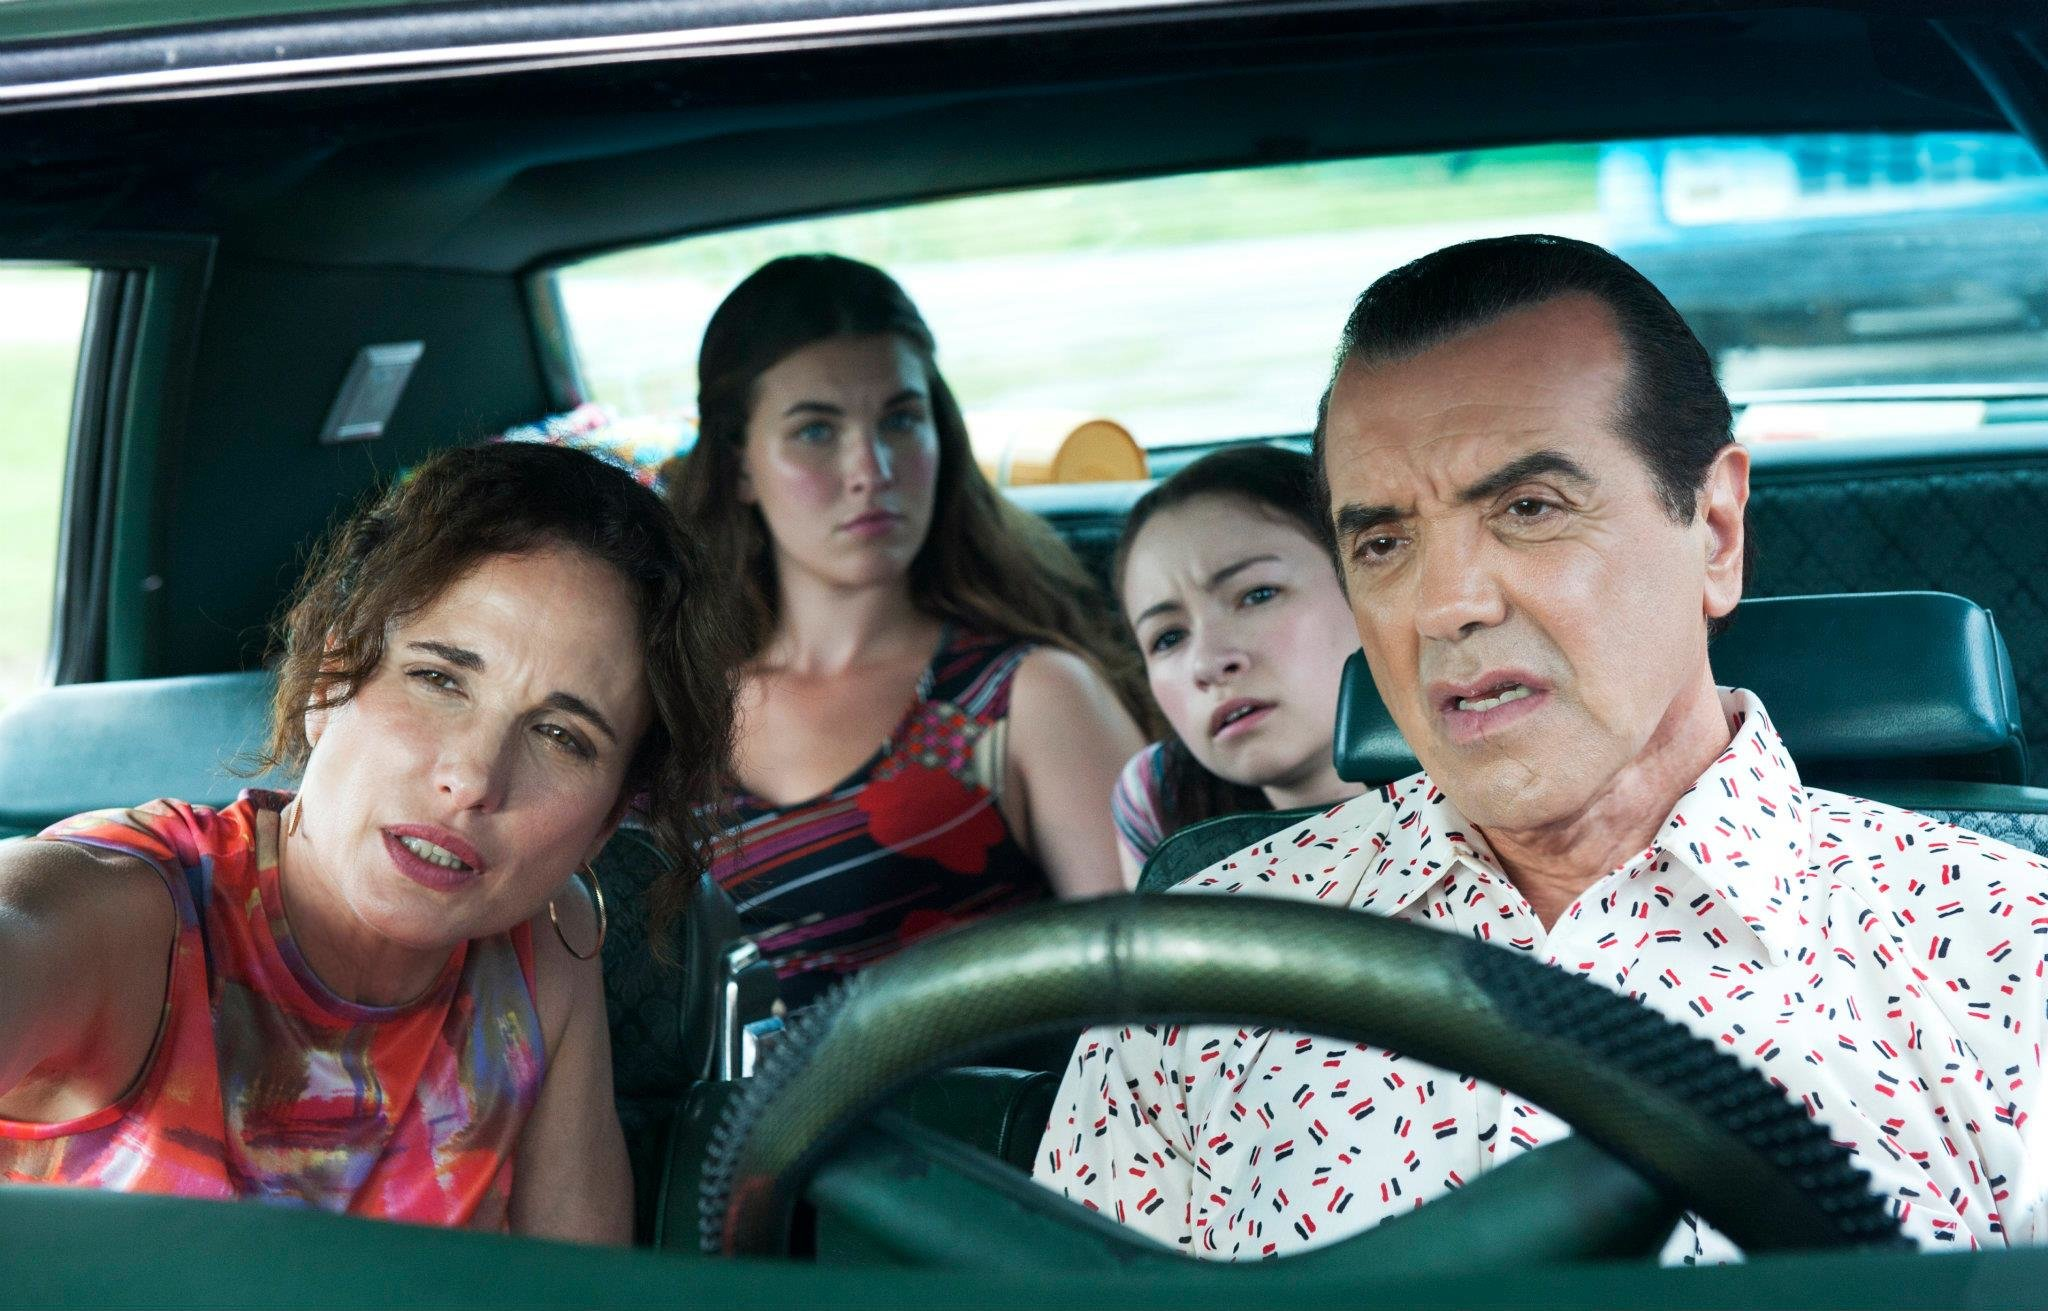 The Fine family - Mighty Fine hit select theaters on May 25th